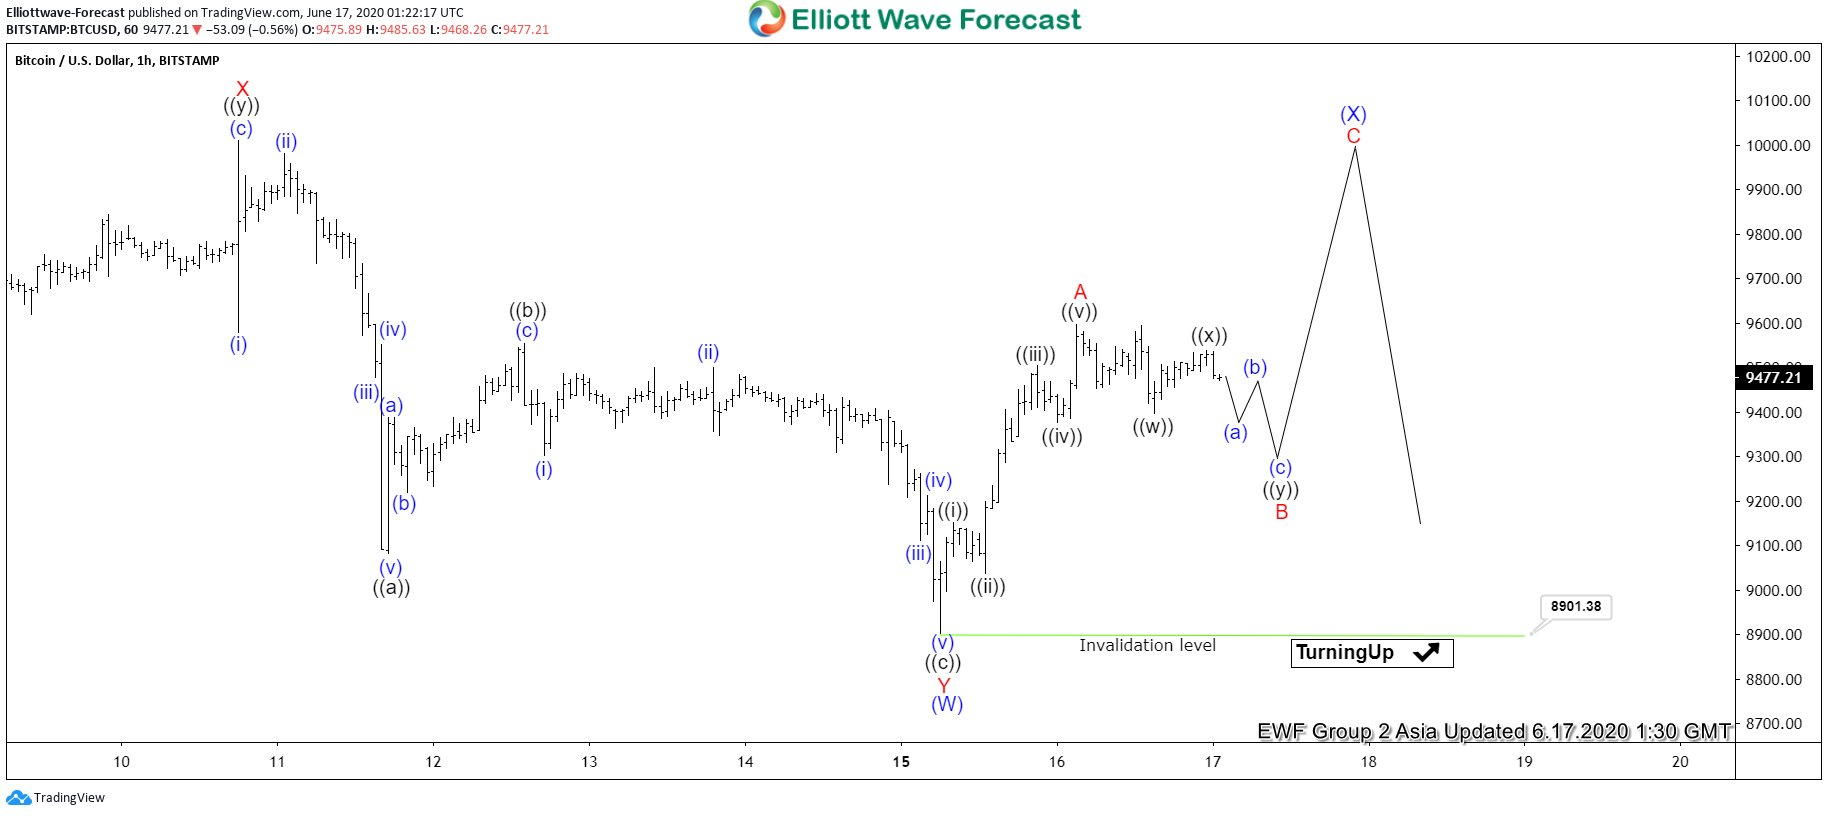 Bitcoin Elliott Wave chart